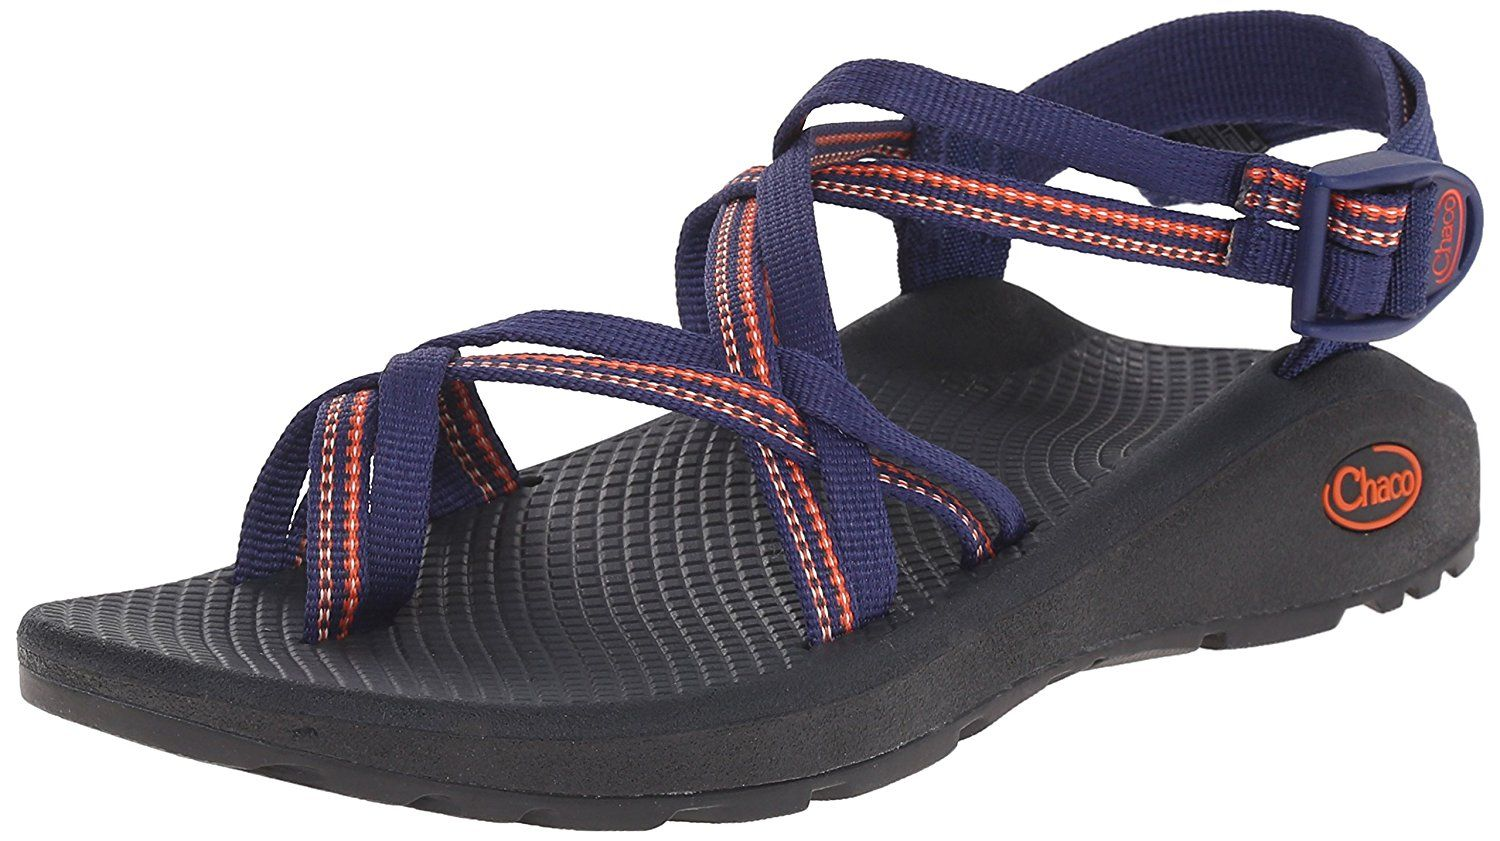 a222ea0ff829 Chaco Women s Zcloud X2 Sport Sandal   Insider s special review you can t  miss. Read more   Chaco sandals